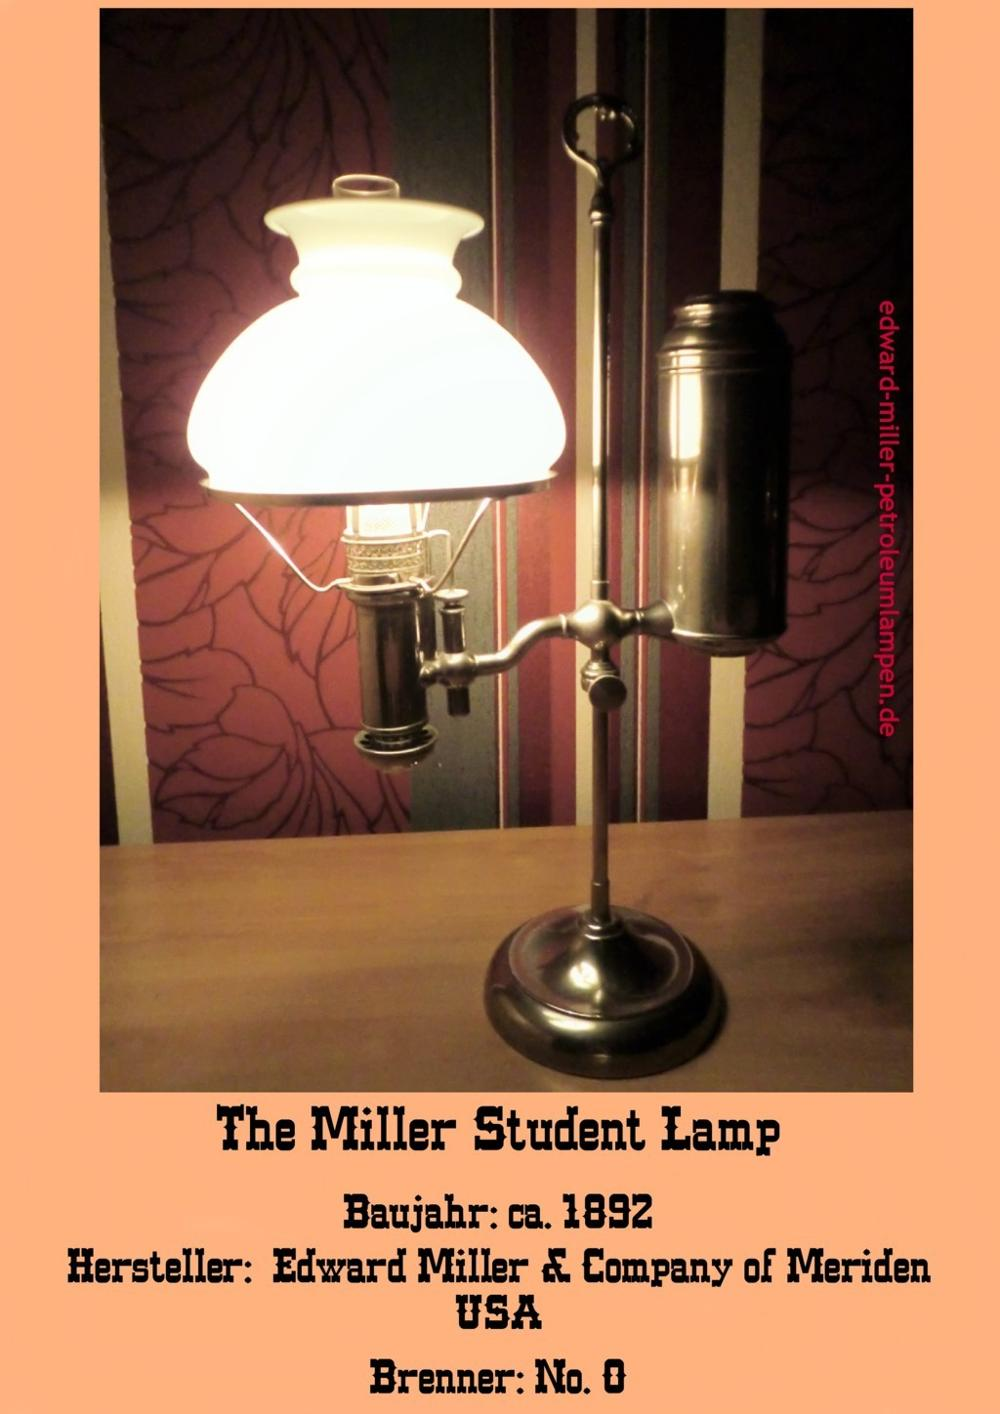 The Miller Student Lamp